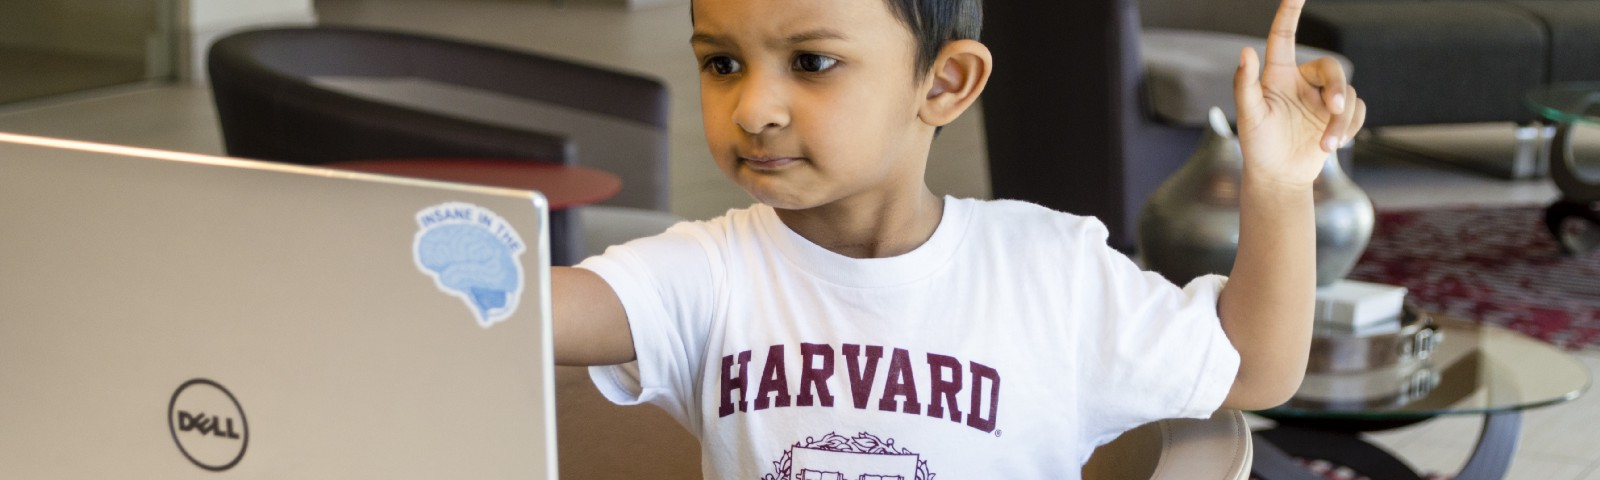 A child wearing a Harvard shirt while confusingly looking at a laptop and wondering why he didn't earn big bucks on Medium.co